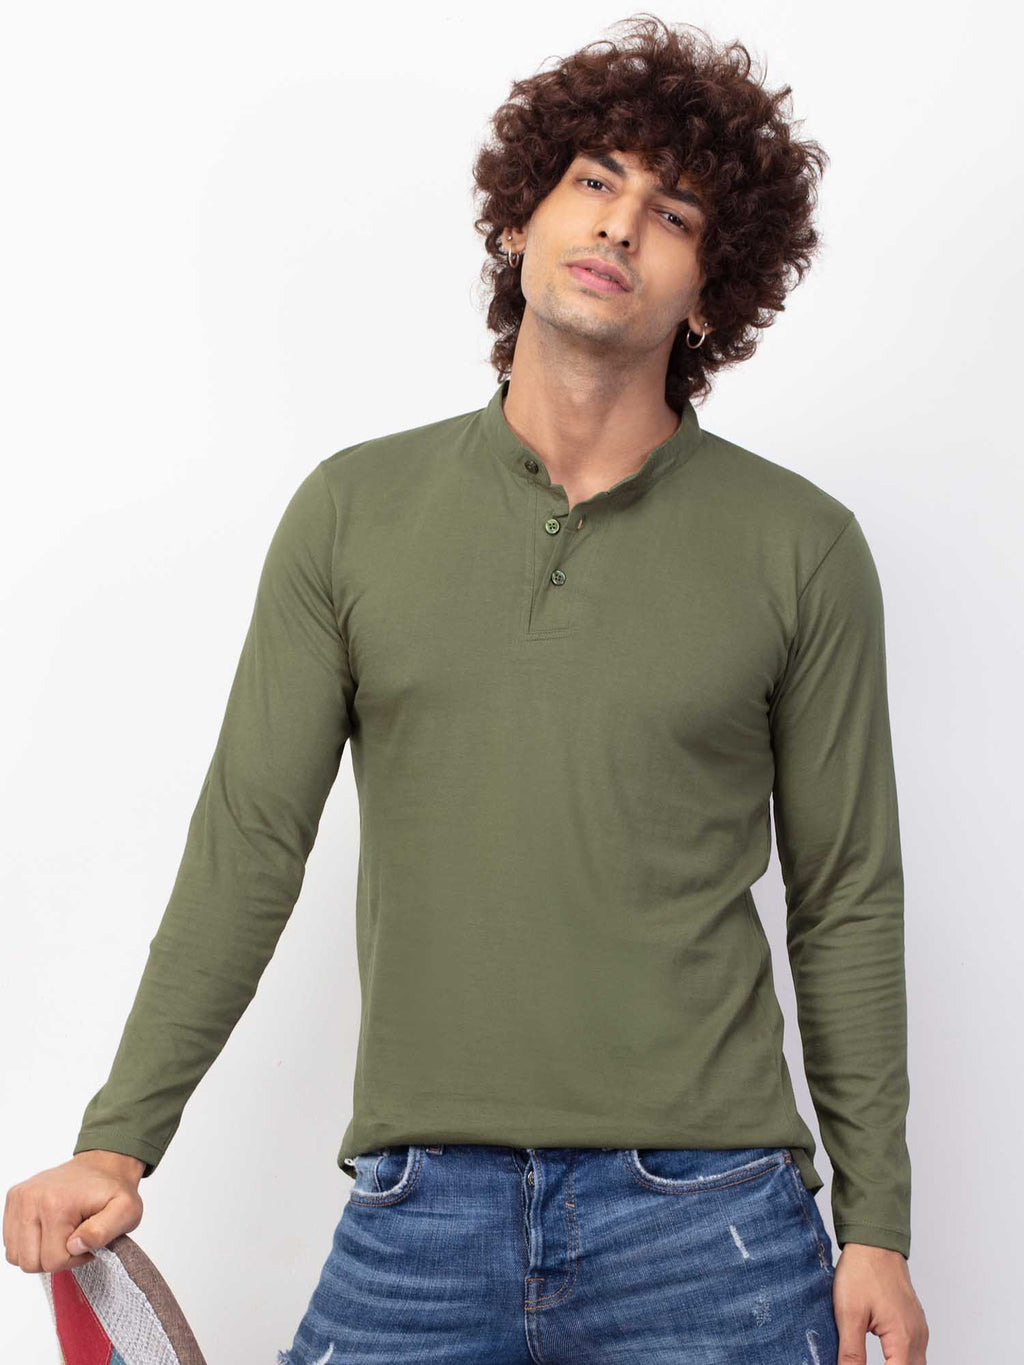 Slim Fit Olive T-shirt Kurta for Men